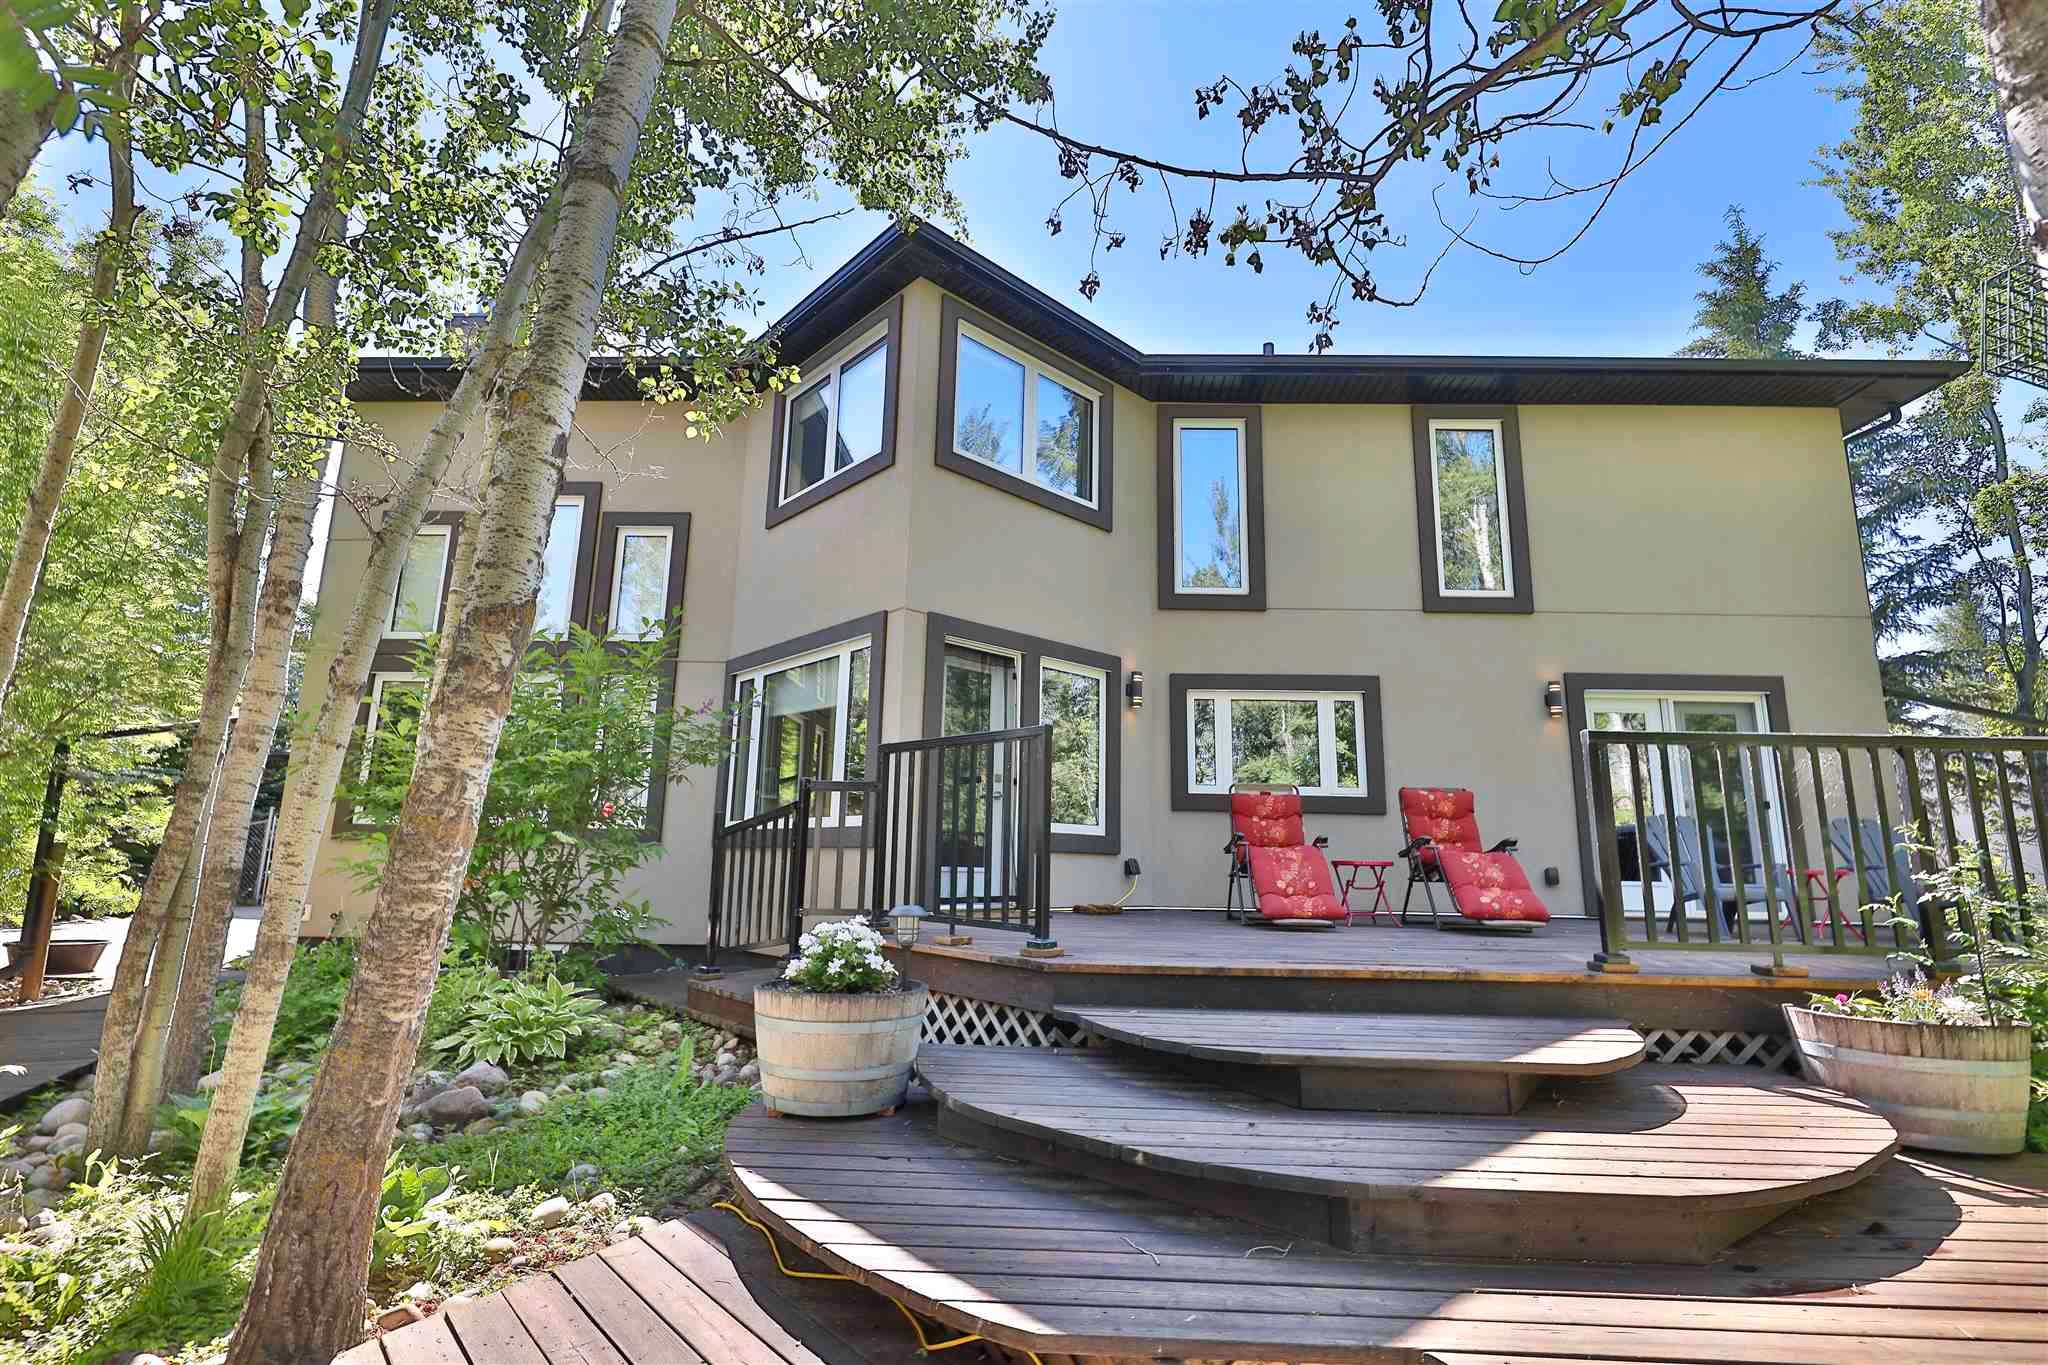 Main Photo: 5 Highlands Place: Wetaskiwin House for sale : MLS®# E4228223